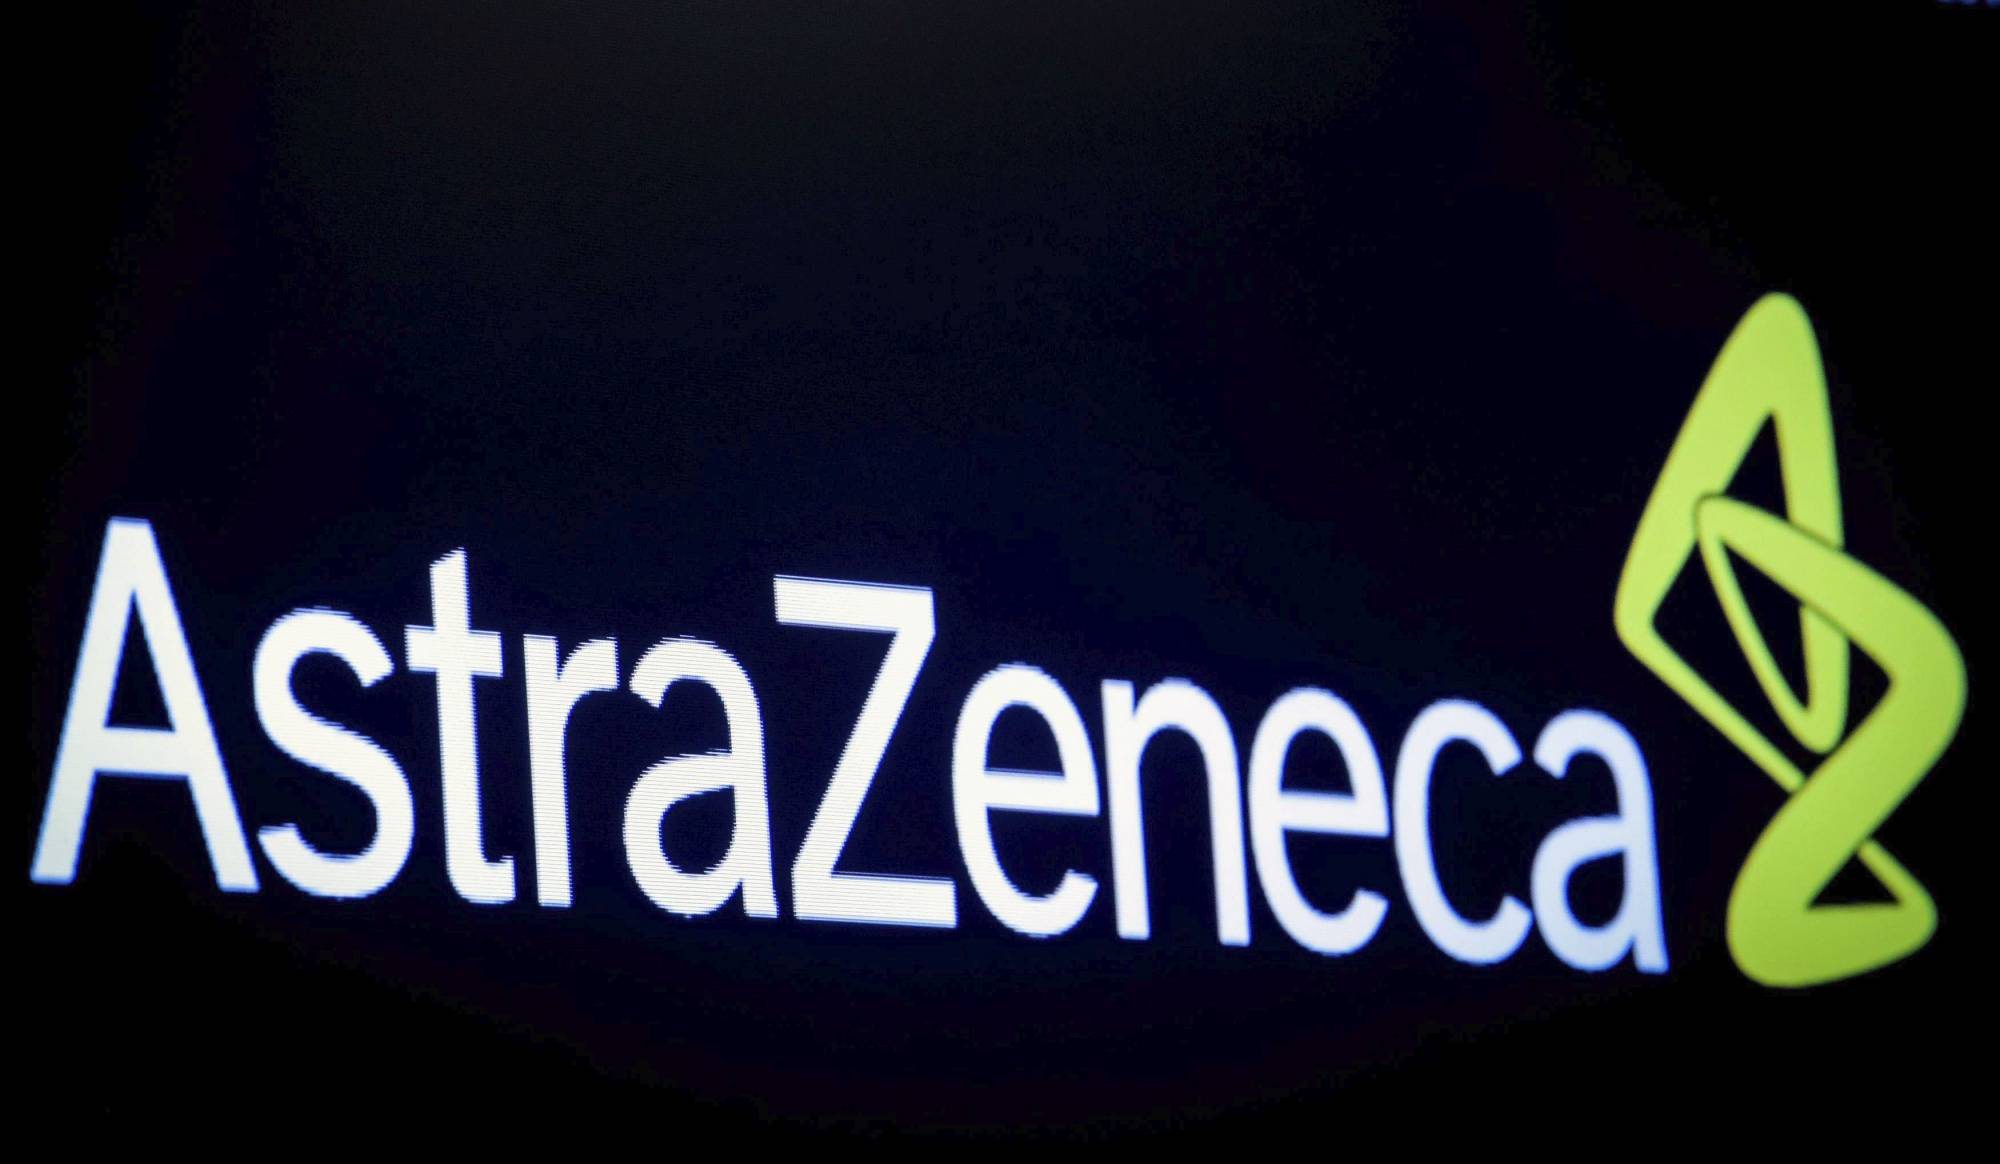 The government is expected to reach a deal soon with AstraZeneca PLC to secure over 100 million doses of a novel coronavirus vaccine being developed with the University of Oxford. | REUTERS / VIA KYODO